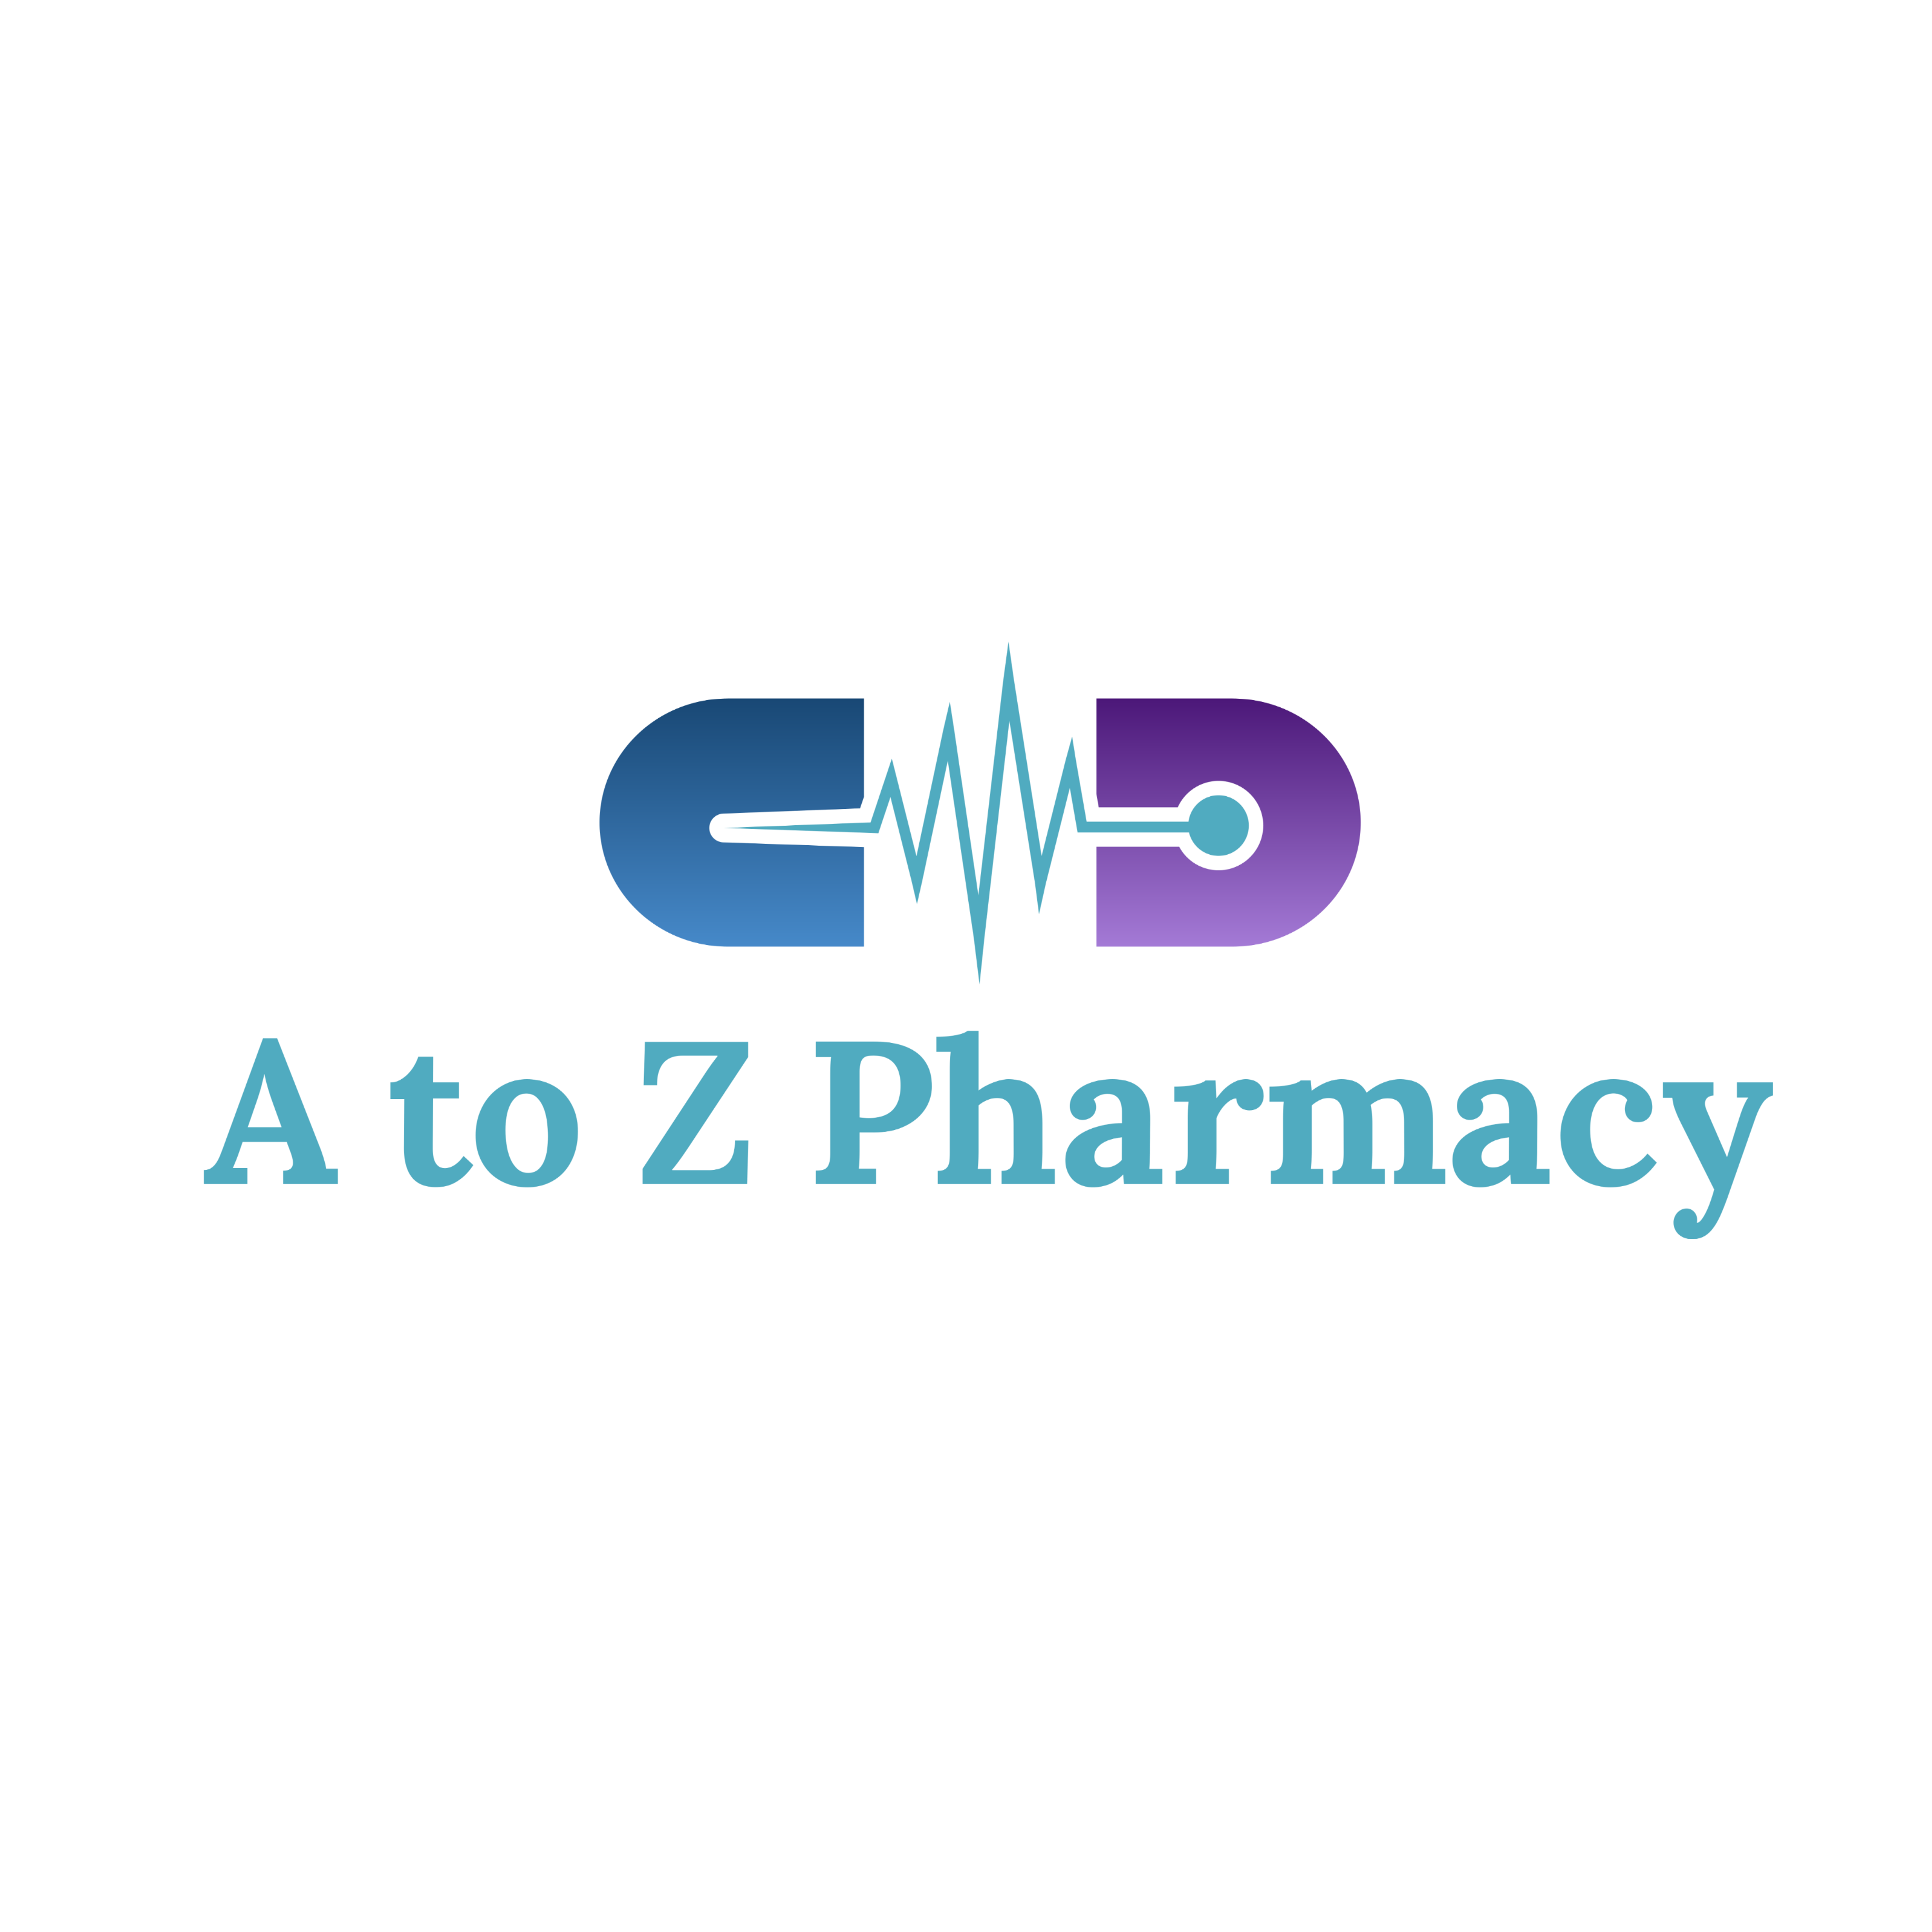 A to Z Pharmacy - Cary, NC 27513 - (919)650-3883 | ShowMeLocal.com